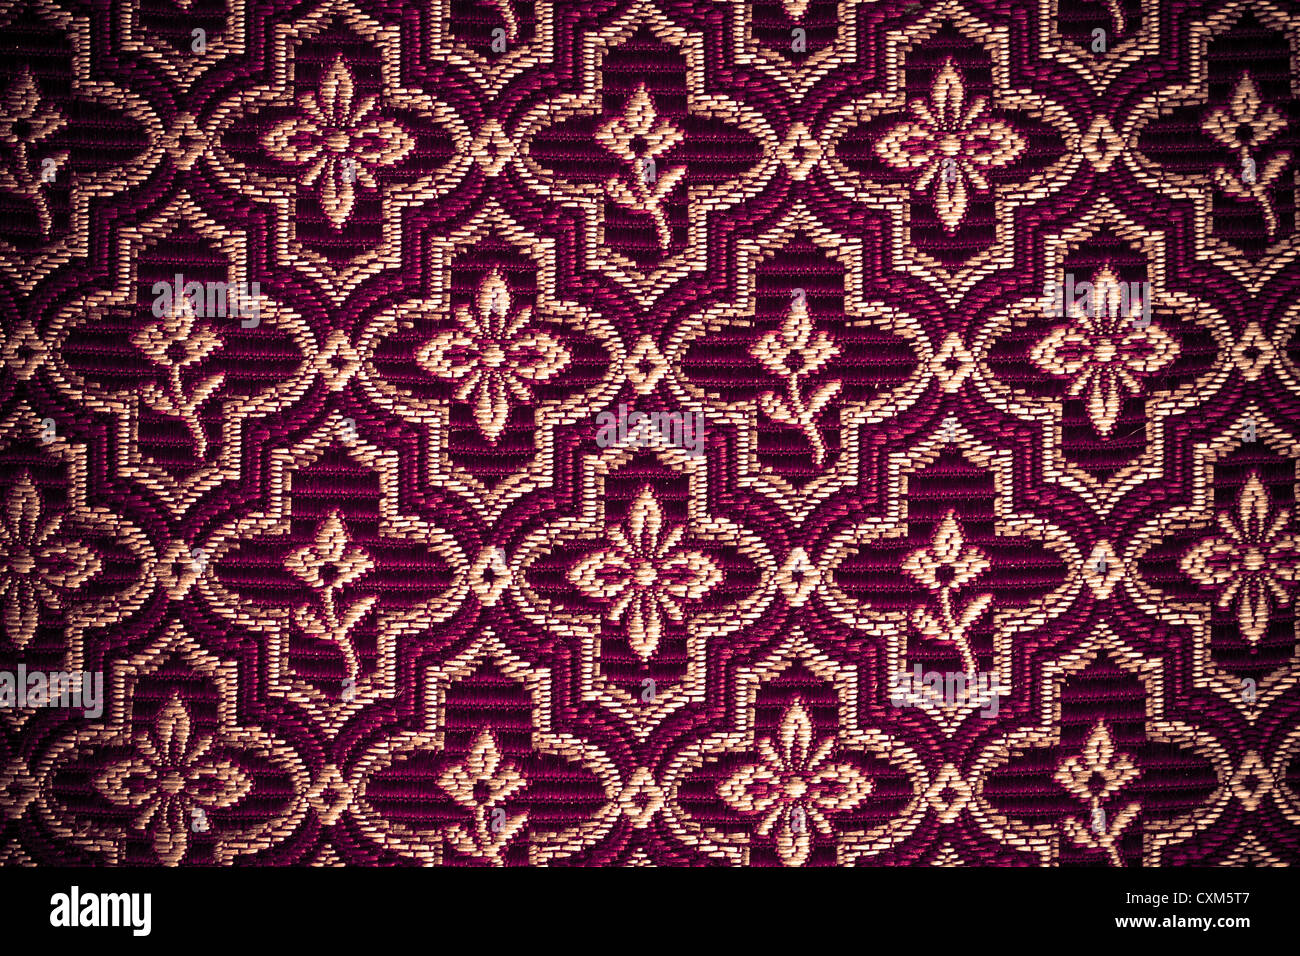 Vintage style upholstery fabric - Stock Image